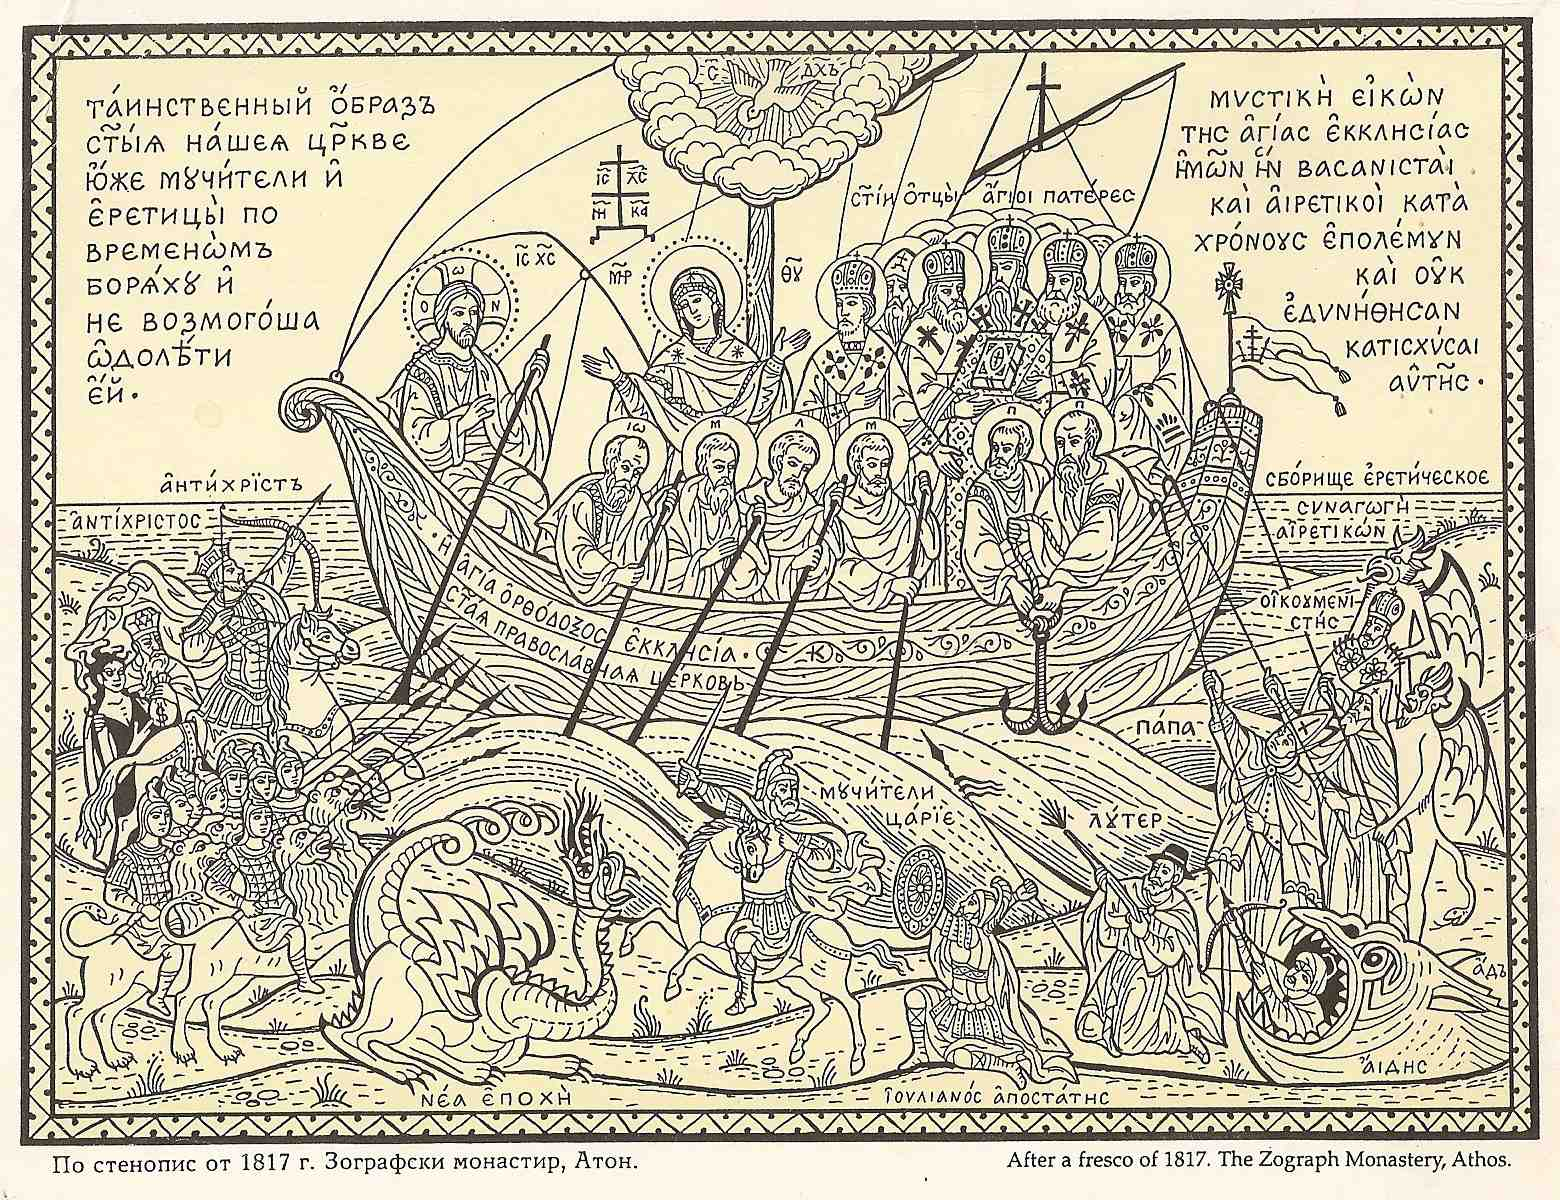 the ark of salvation and the pirate ship of zealotism mystagogy